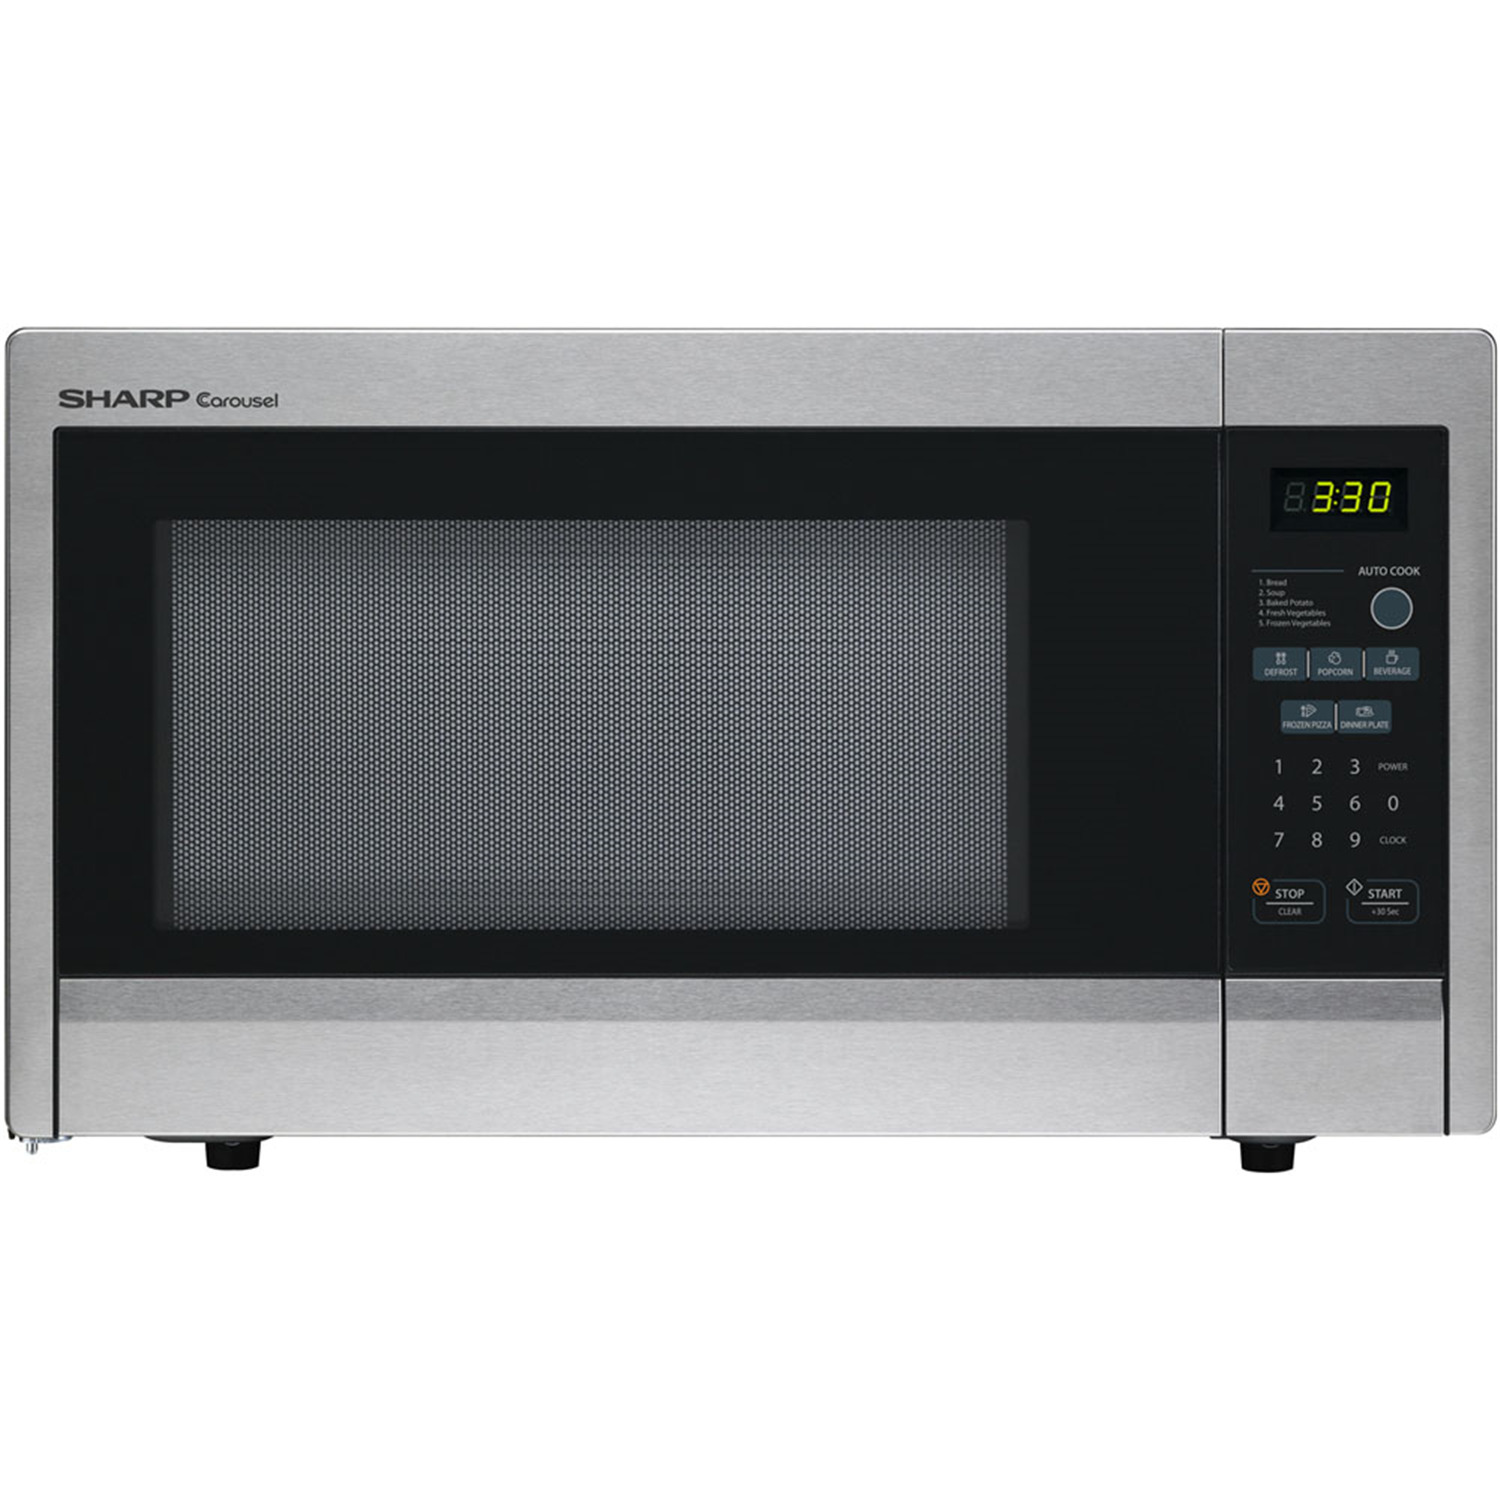 Carousel 1.1 Cu. Ft. 1000W Countertop Microwave Oven